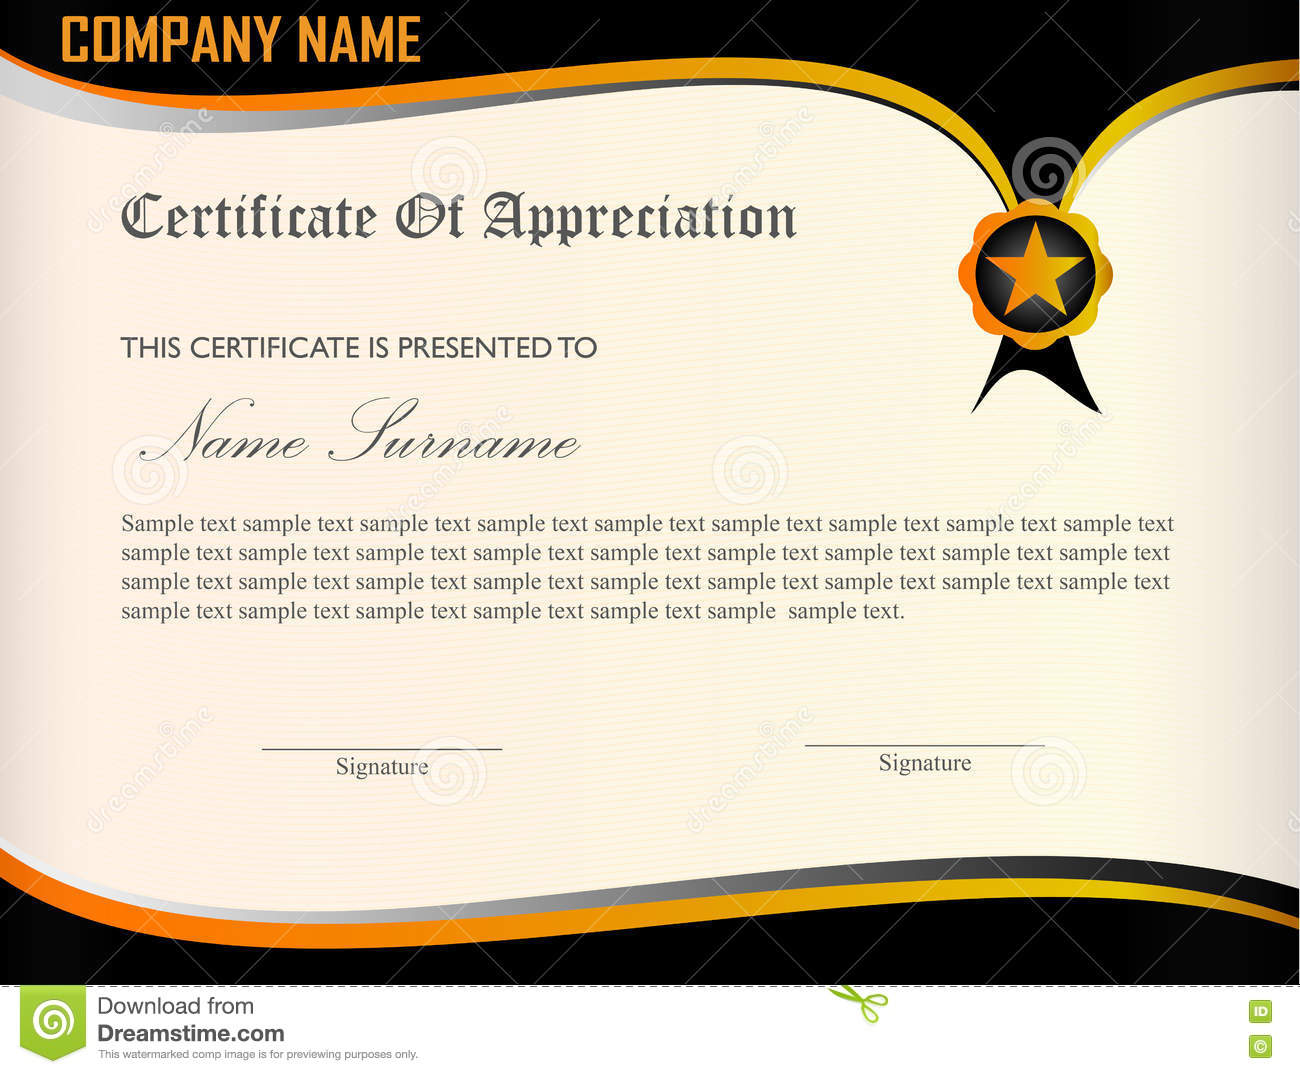 certificate appreciation template stock vector - image: 74767909, Modern powerpoint